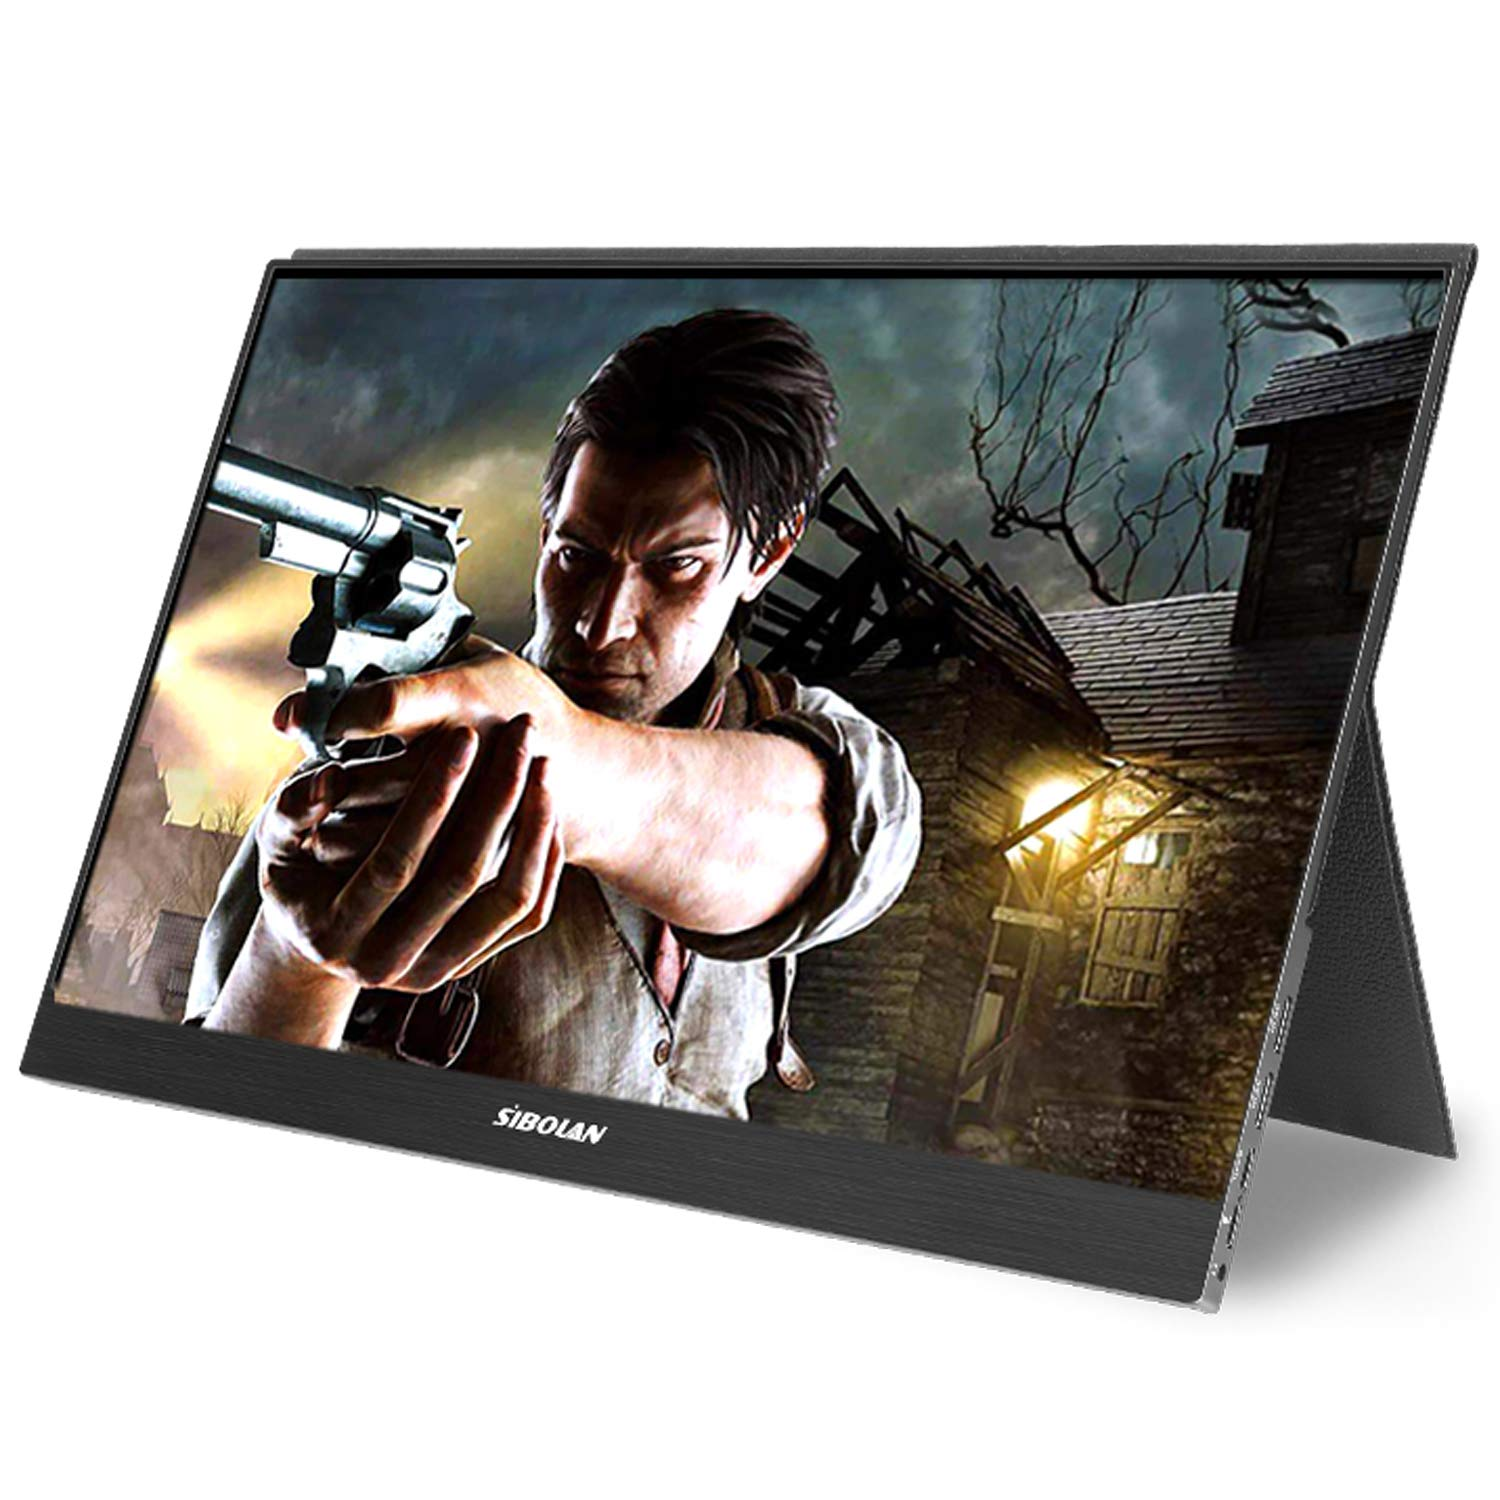 144HZ Portable Monitor 15.6 inch 1080P USB Type-C 9ms Response Time IPS HDR Gaming Monitor 4mm Ultra Slim for Office and Games with Smart Case